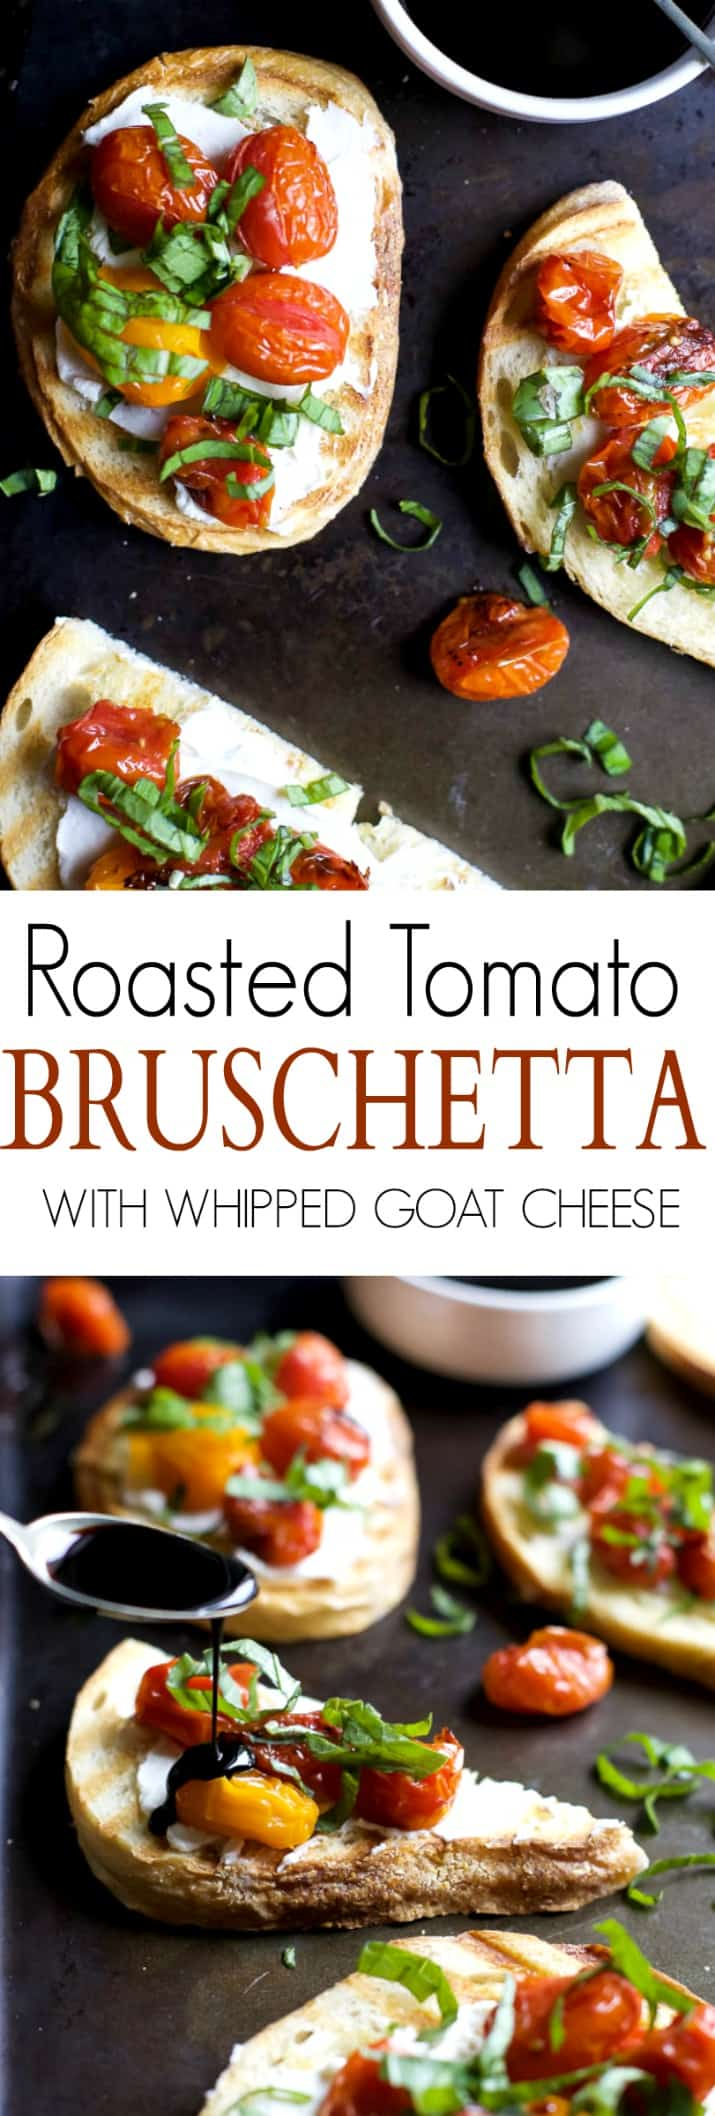 Roasted Tomato Bruschetta with Whipped Goat and a Balsamic Reduction Drizzle - an appetizer that everyone will love and only takes minutes to make! | joyfulhealthyeats.com